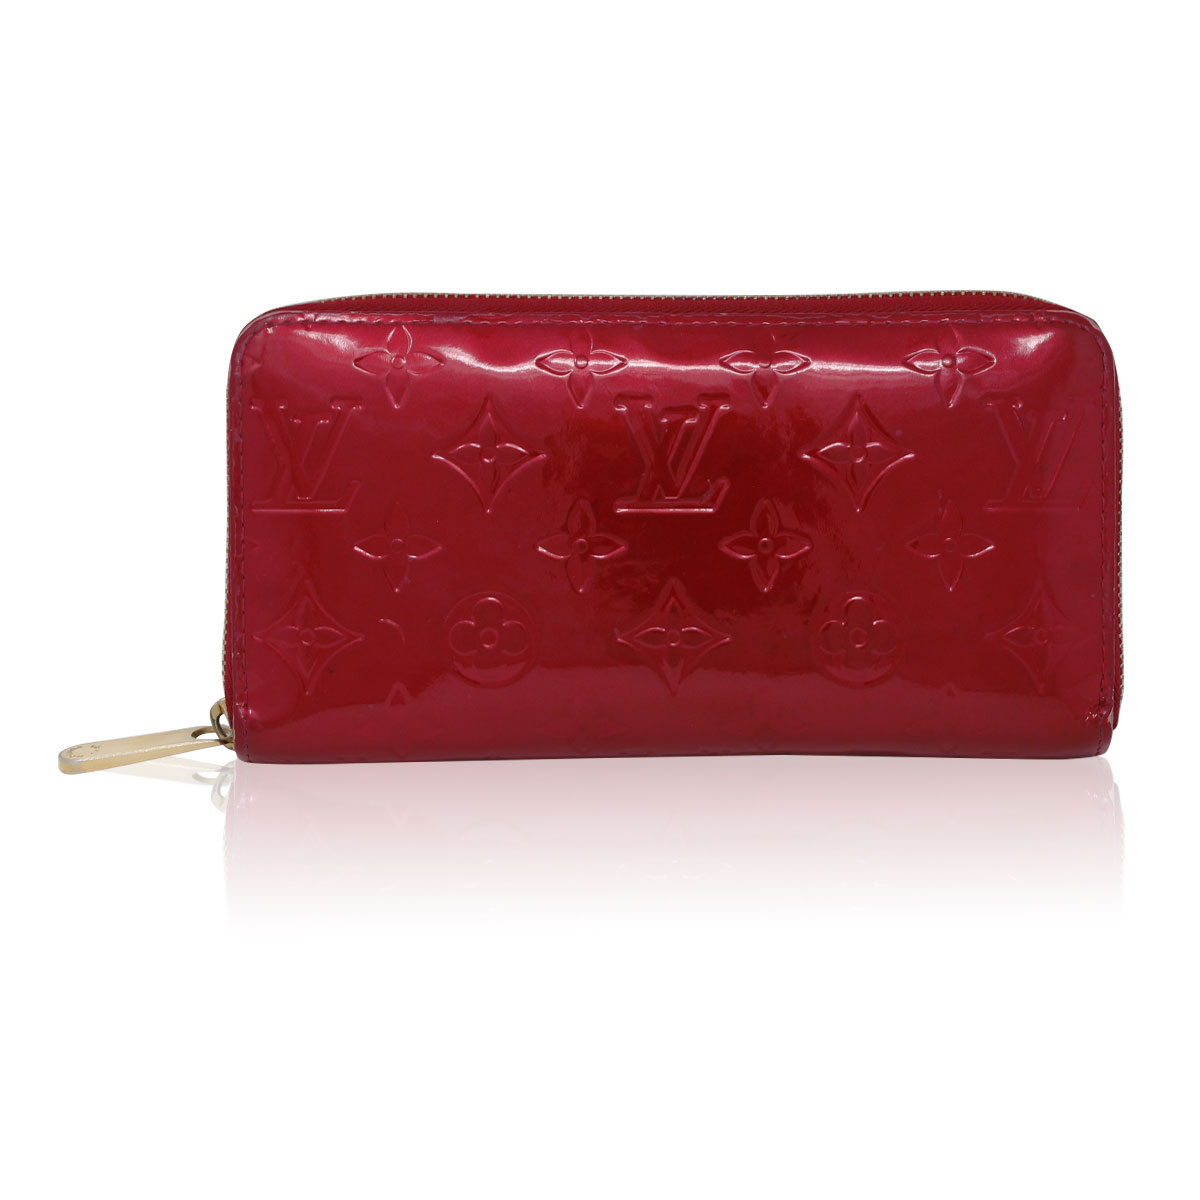 5181b1ae4de2 Louis Vuitton Zippy Wallet Red Vernis Leather in Box